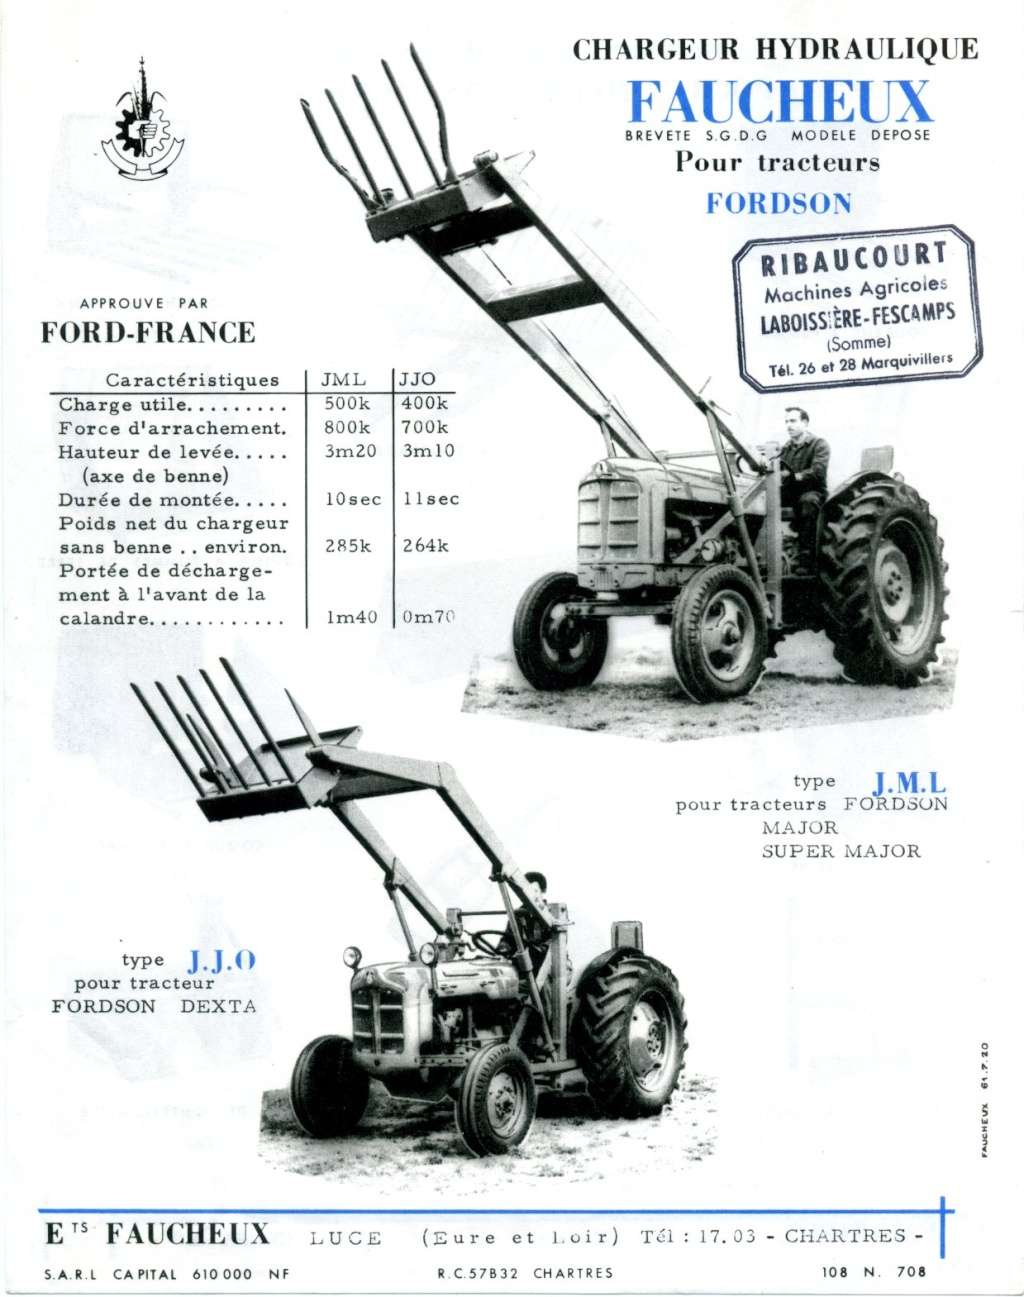 fordson dexta with T31968 Faucheux Specialiste Du Chargeur on Farg 1l Fordson Gran additionally T1765 Diferencias Entre Ebro 160d Y 160e further File Fordson Dexta p2 besides 1962 1970 in addition 932838.